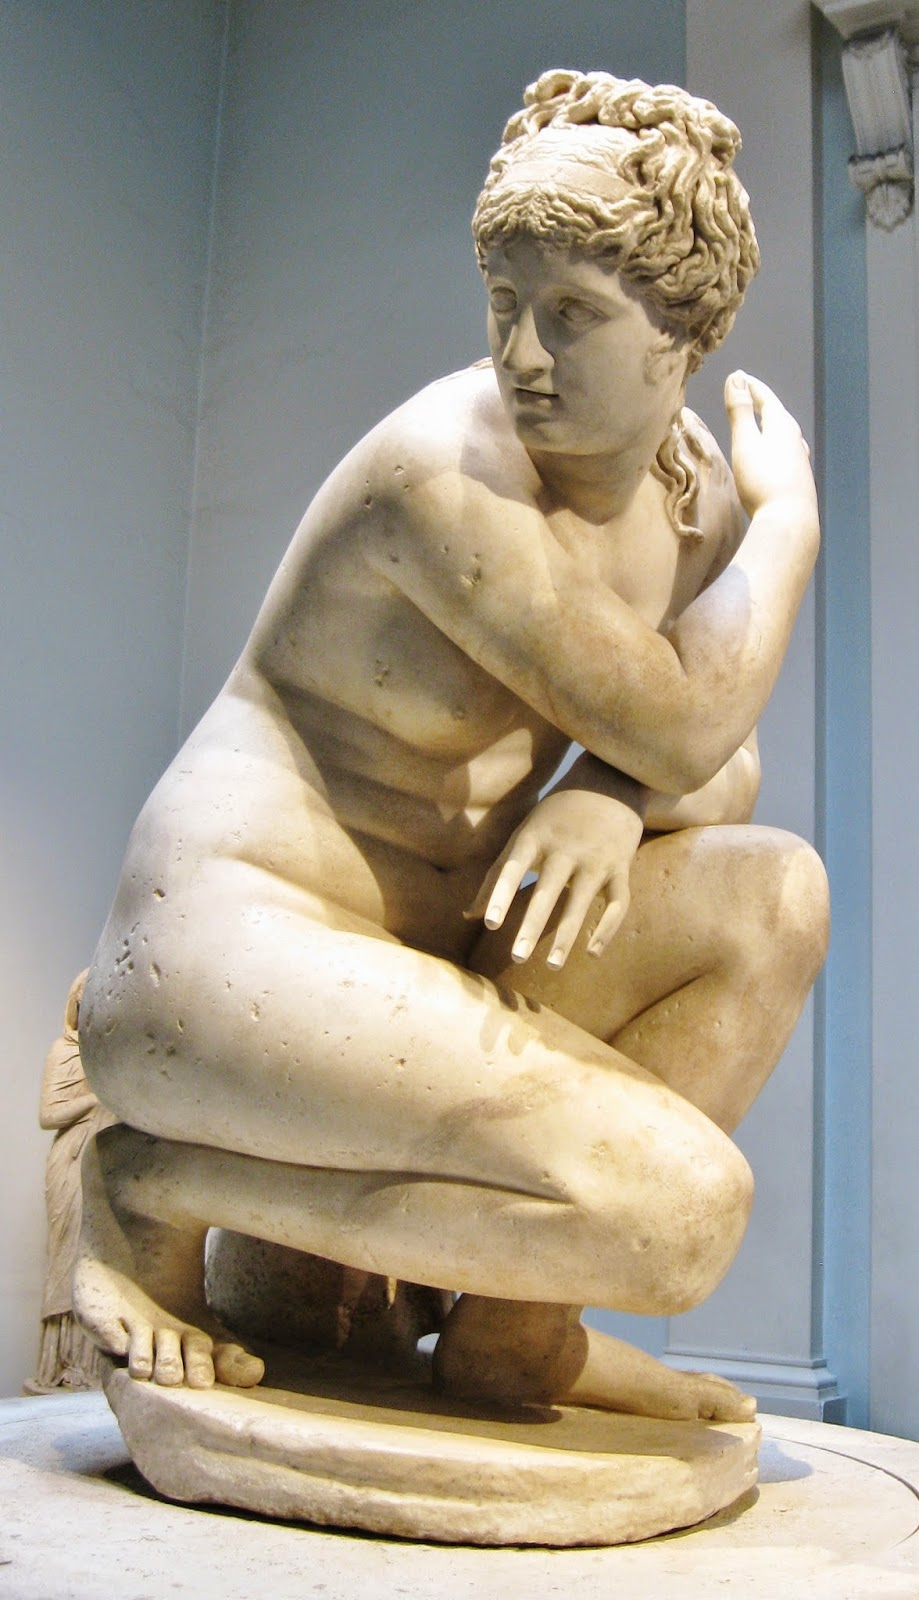 an analysis of aphrodite represented in art Visual analysis of the marble statue of aphrodite visual analysis of the marble statue of aphrodite cultural histories are represented and documented through.